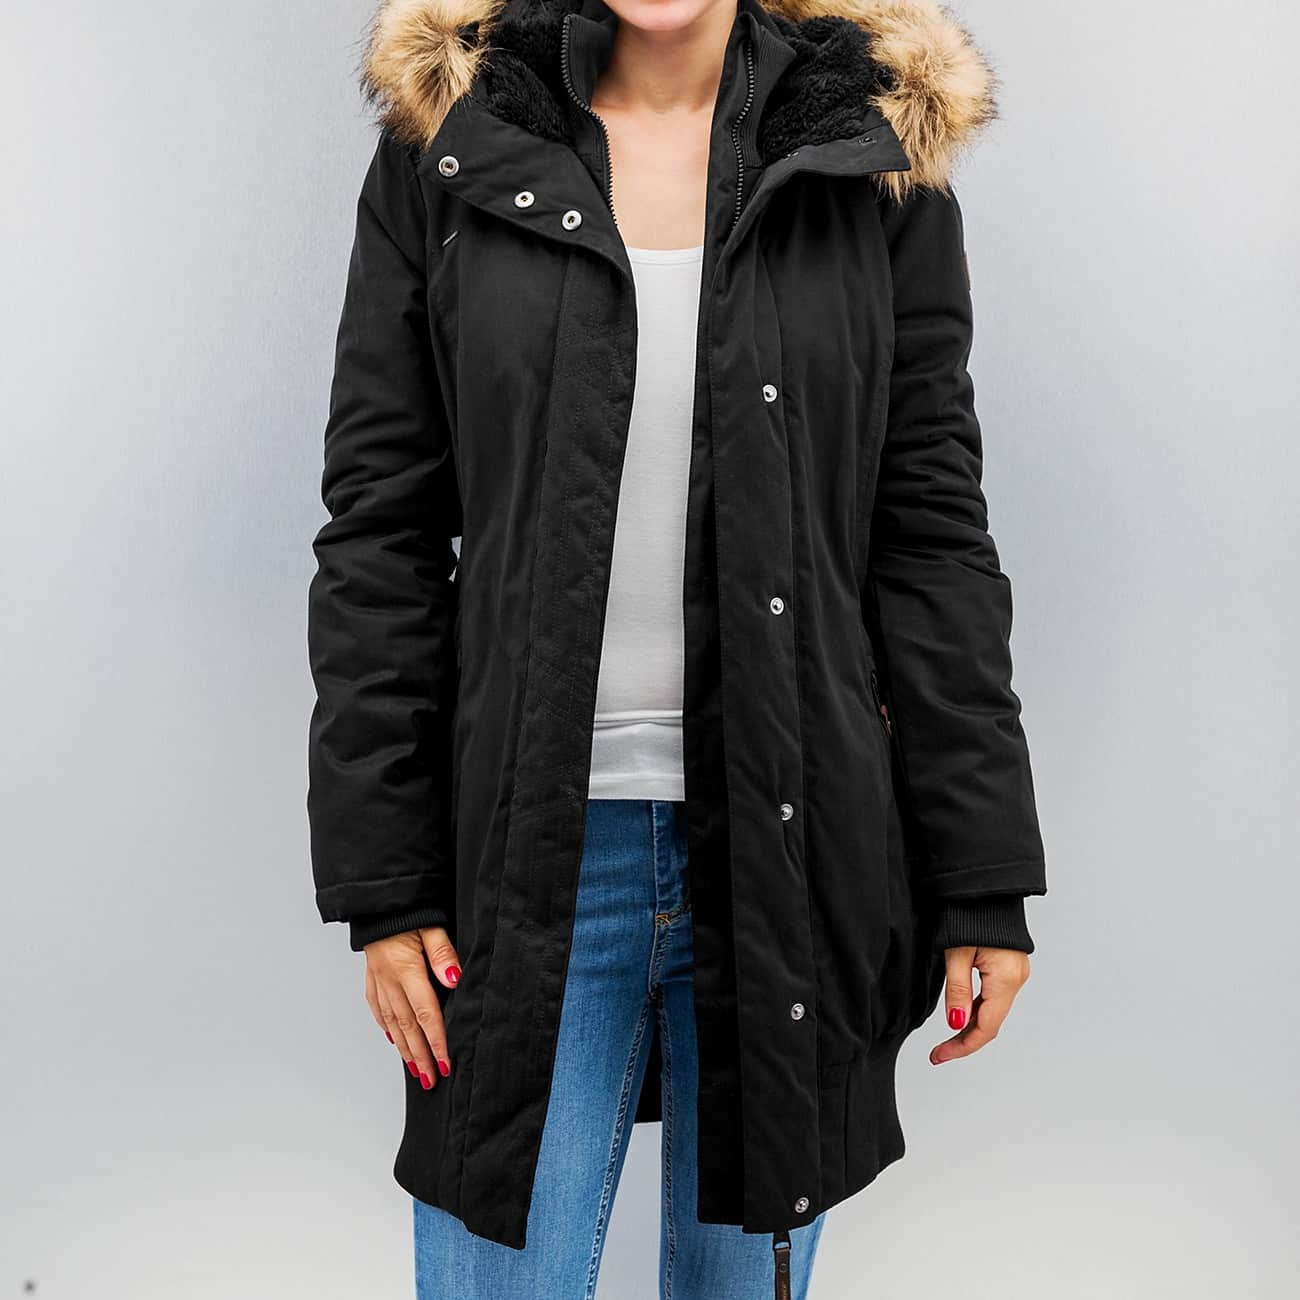 Ragwear Winter Jackets Cool designs with chic extras